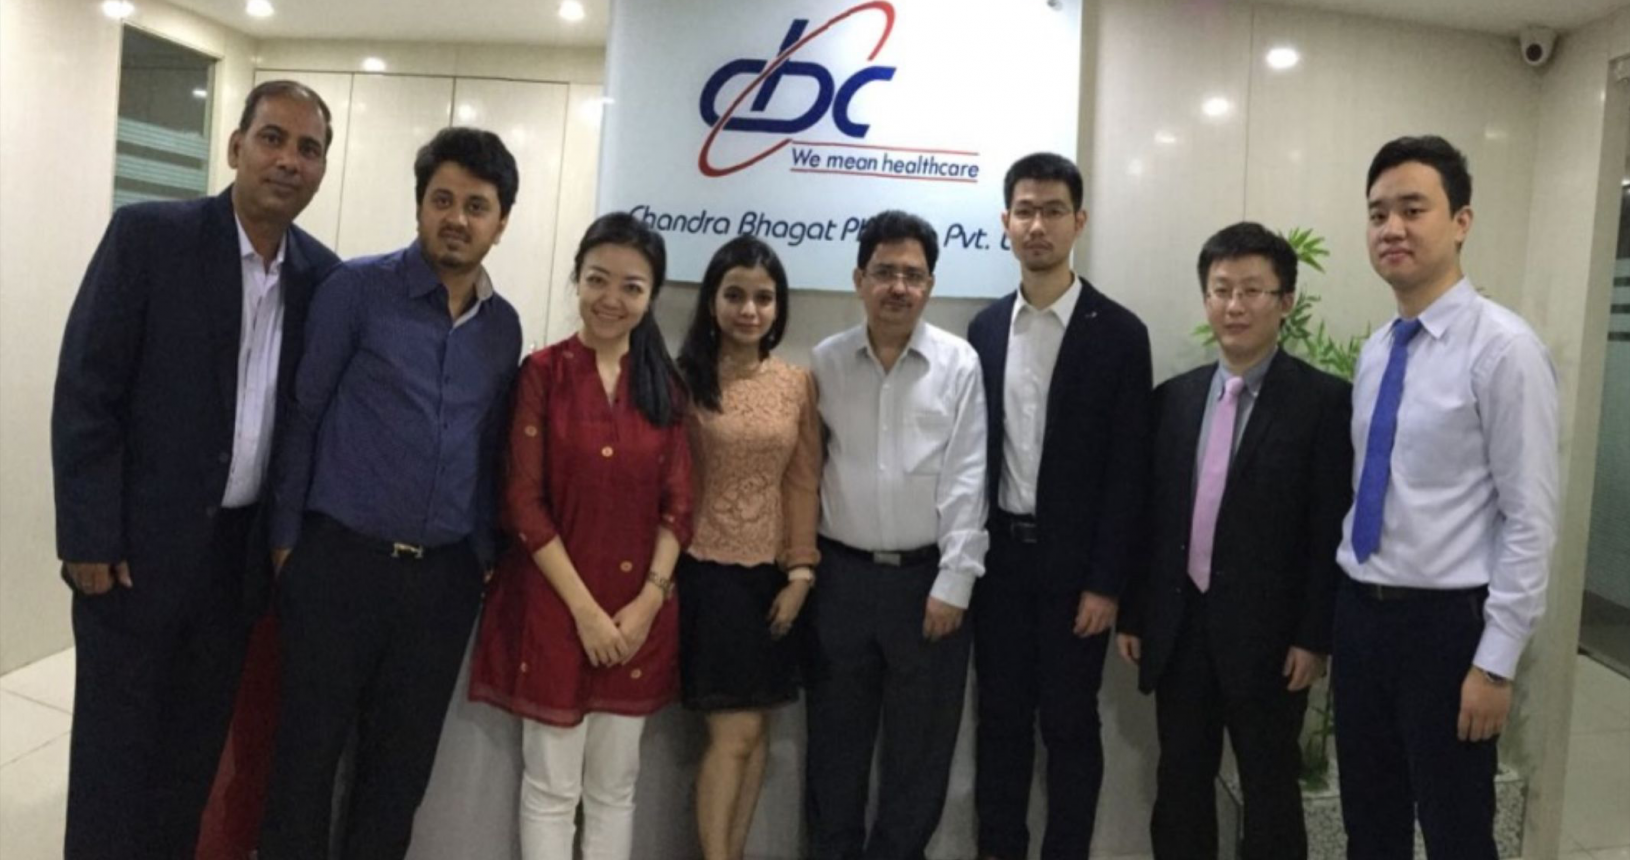 Mr. Pranav Bhagat & Mrs. Prachi Bhagat with Mr. Alan Founder Sinopharm India & Sinopharm China Team